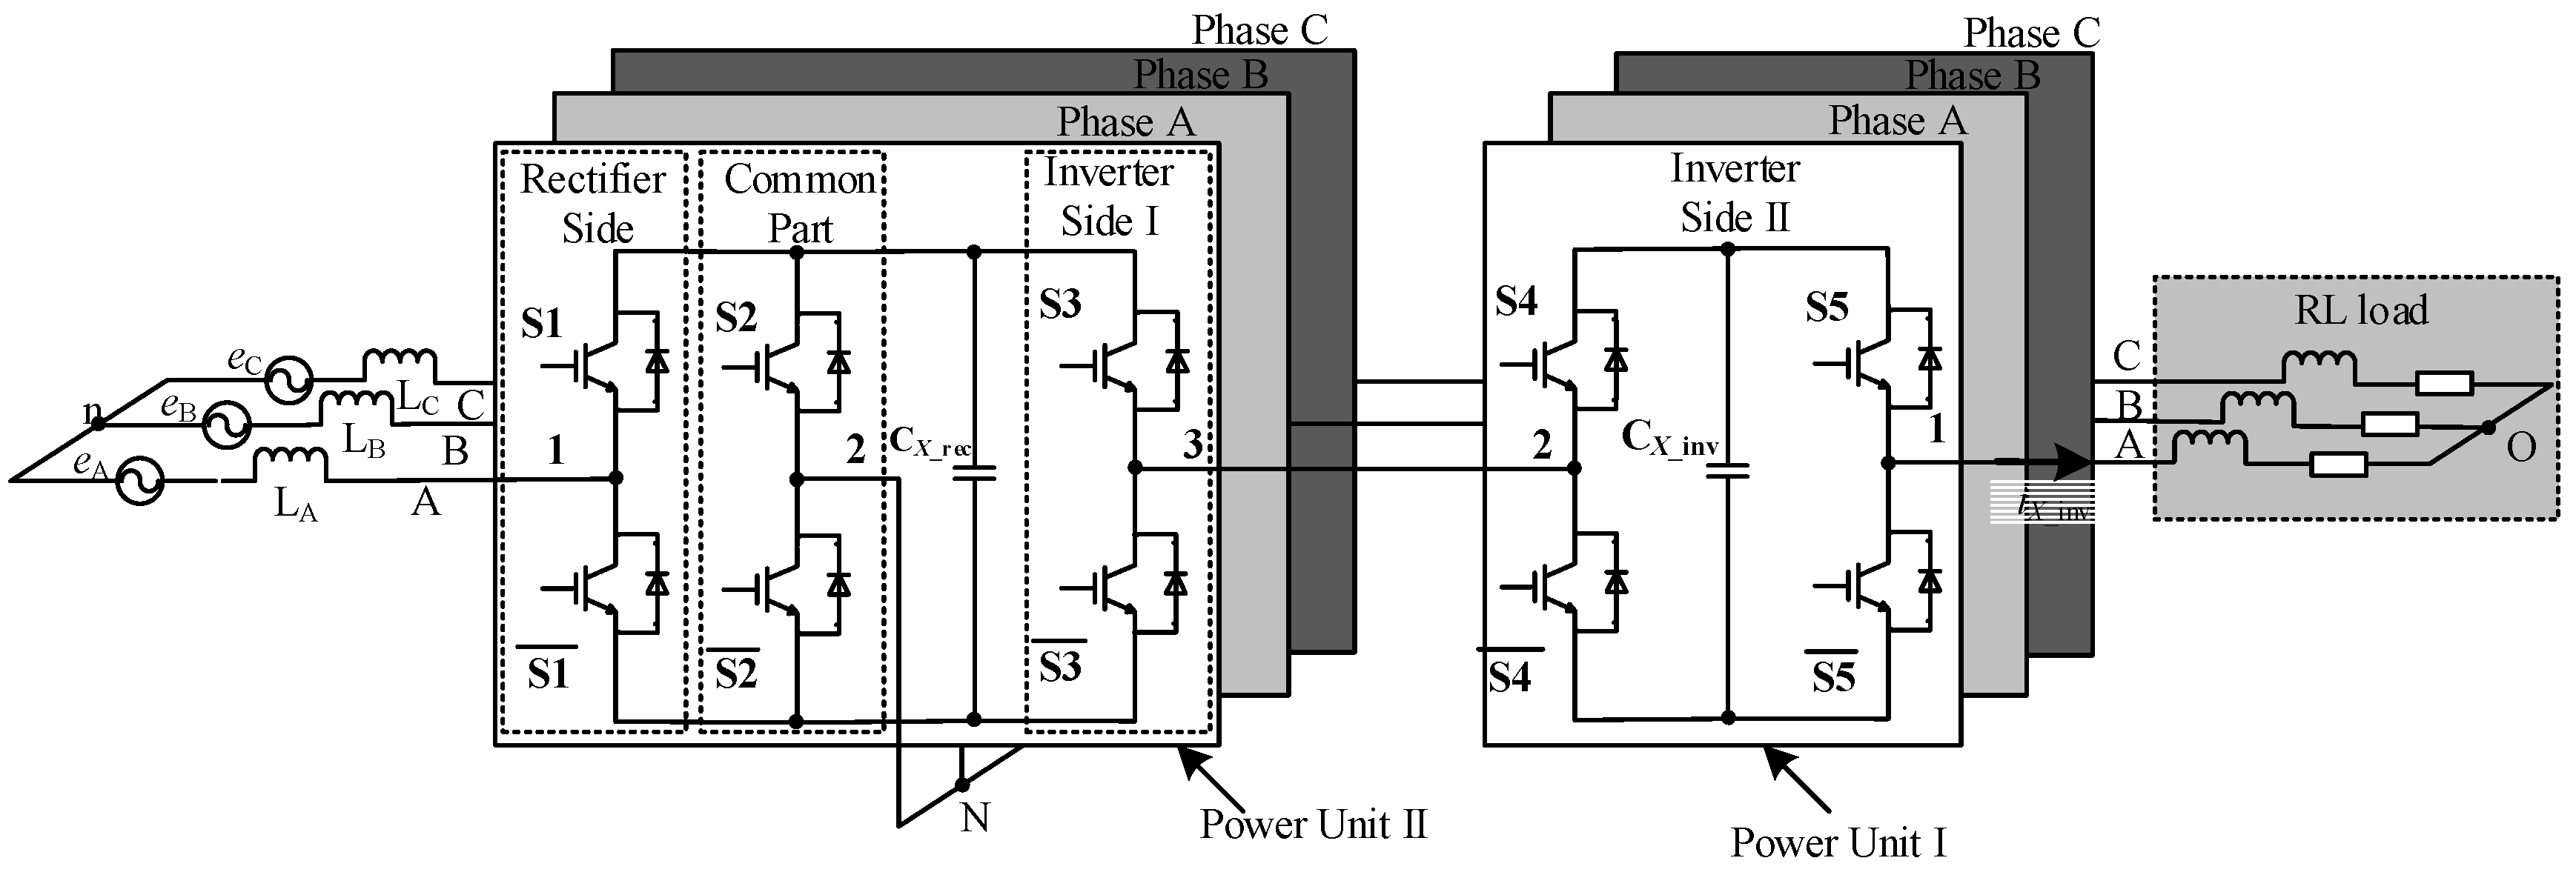 Draw The Circuit Diagram For Voltage Source Trusted Wiring Energies Free Full Text A Novel Three Level